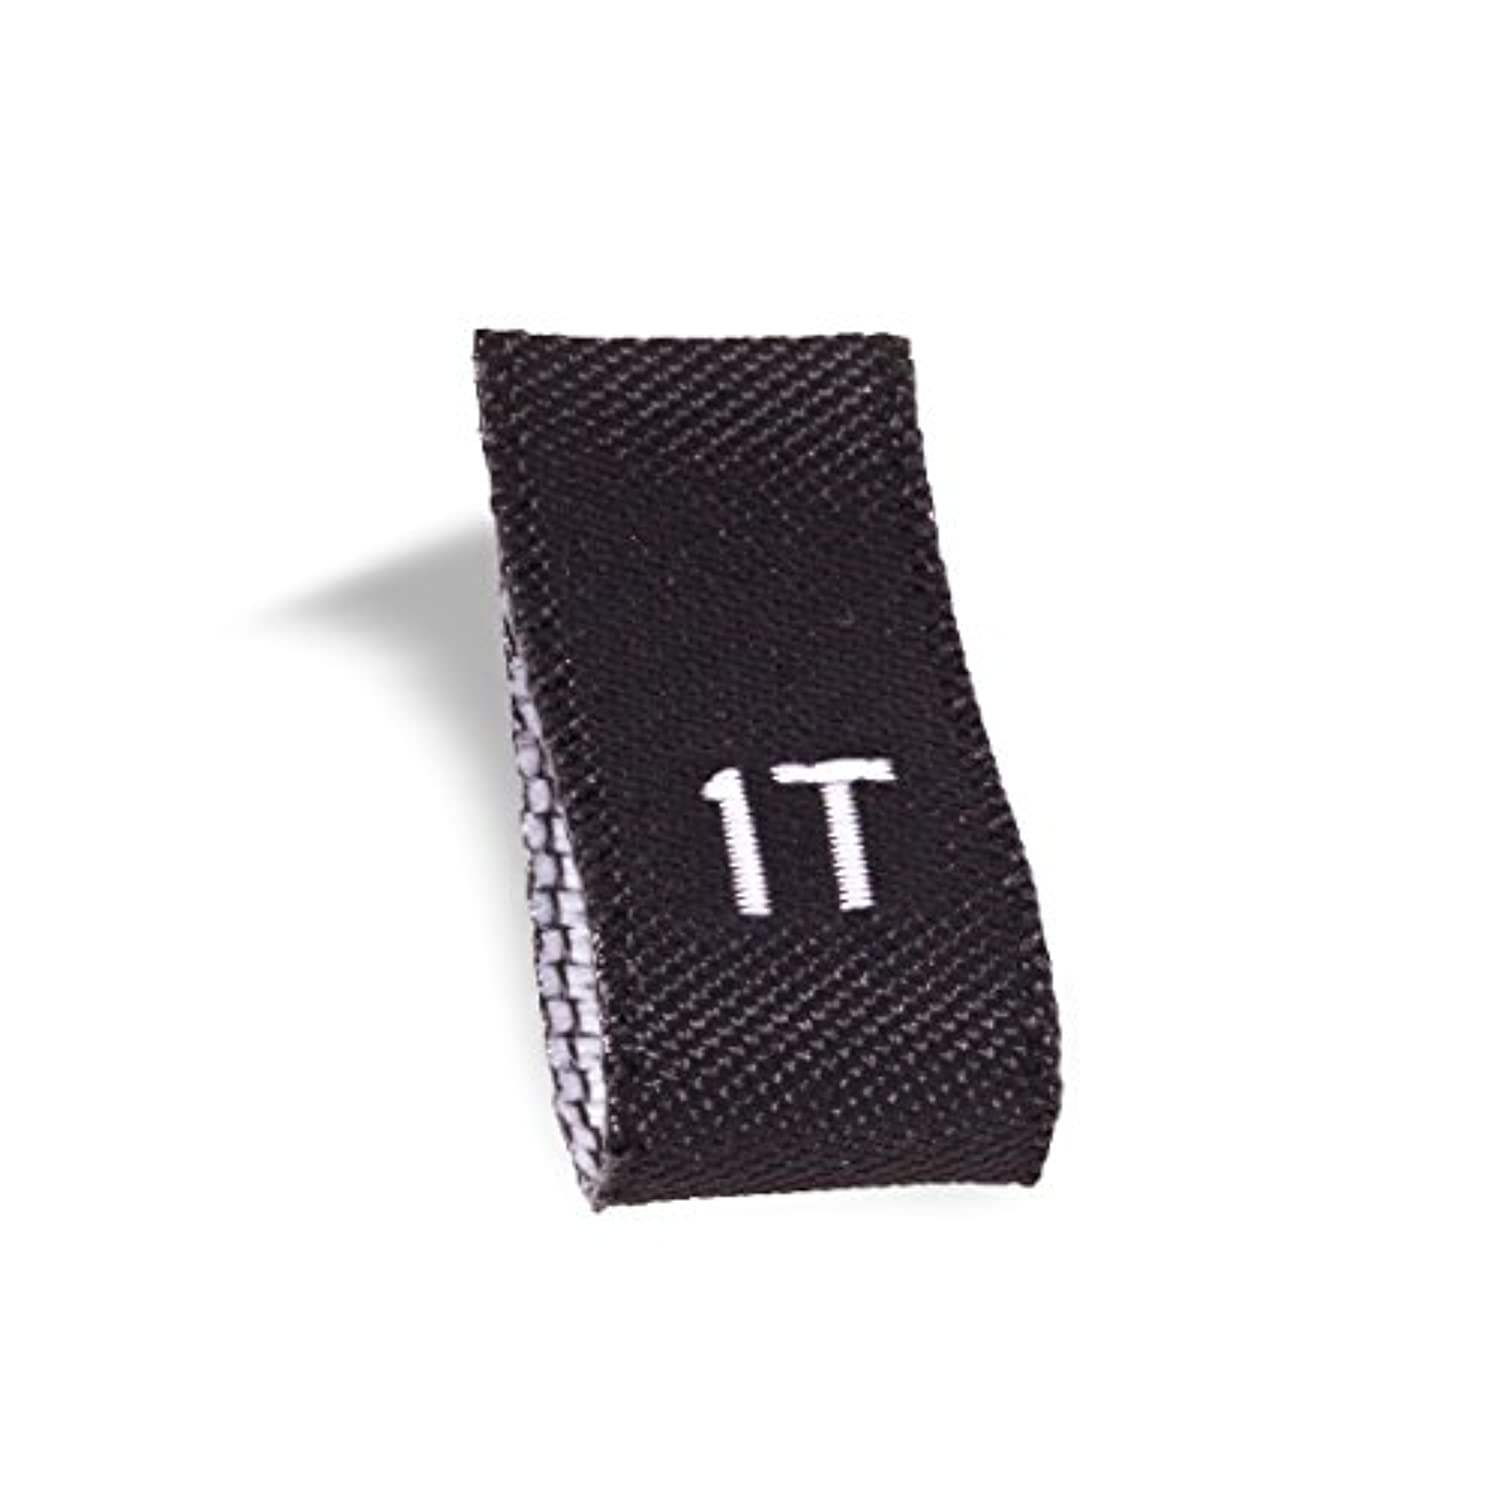 Wunderlabel Kid Size Label Woven Crafting Craft Art Fashion Ribbon Ribbons Tag for Clothing Sewing Sew on Clothes Garment Fabric Material Embroidered Label Labels Tags, White on Black, 1T, 25 Labels